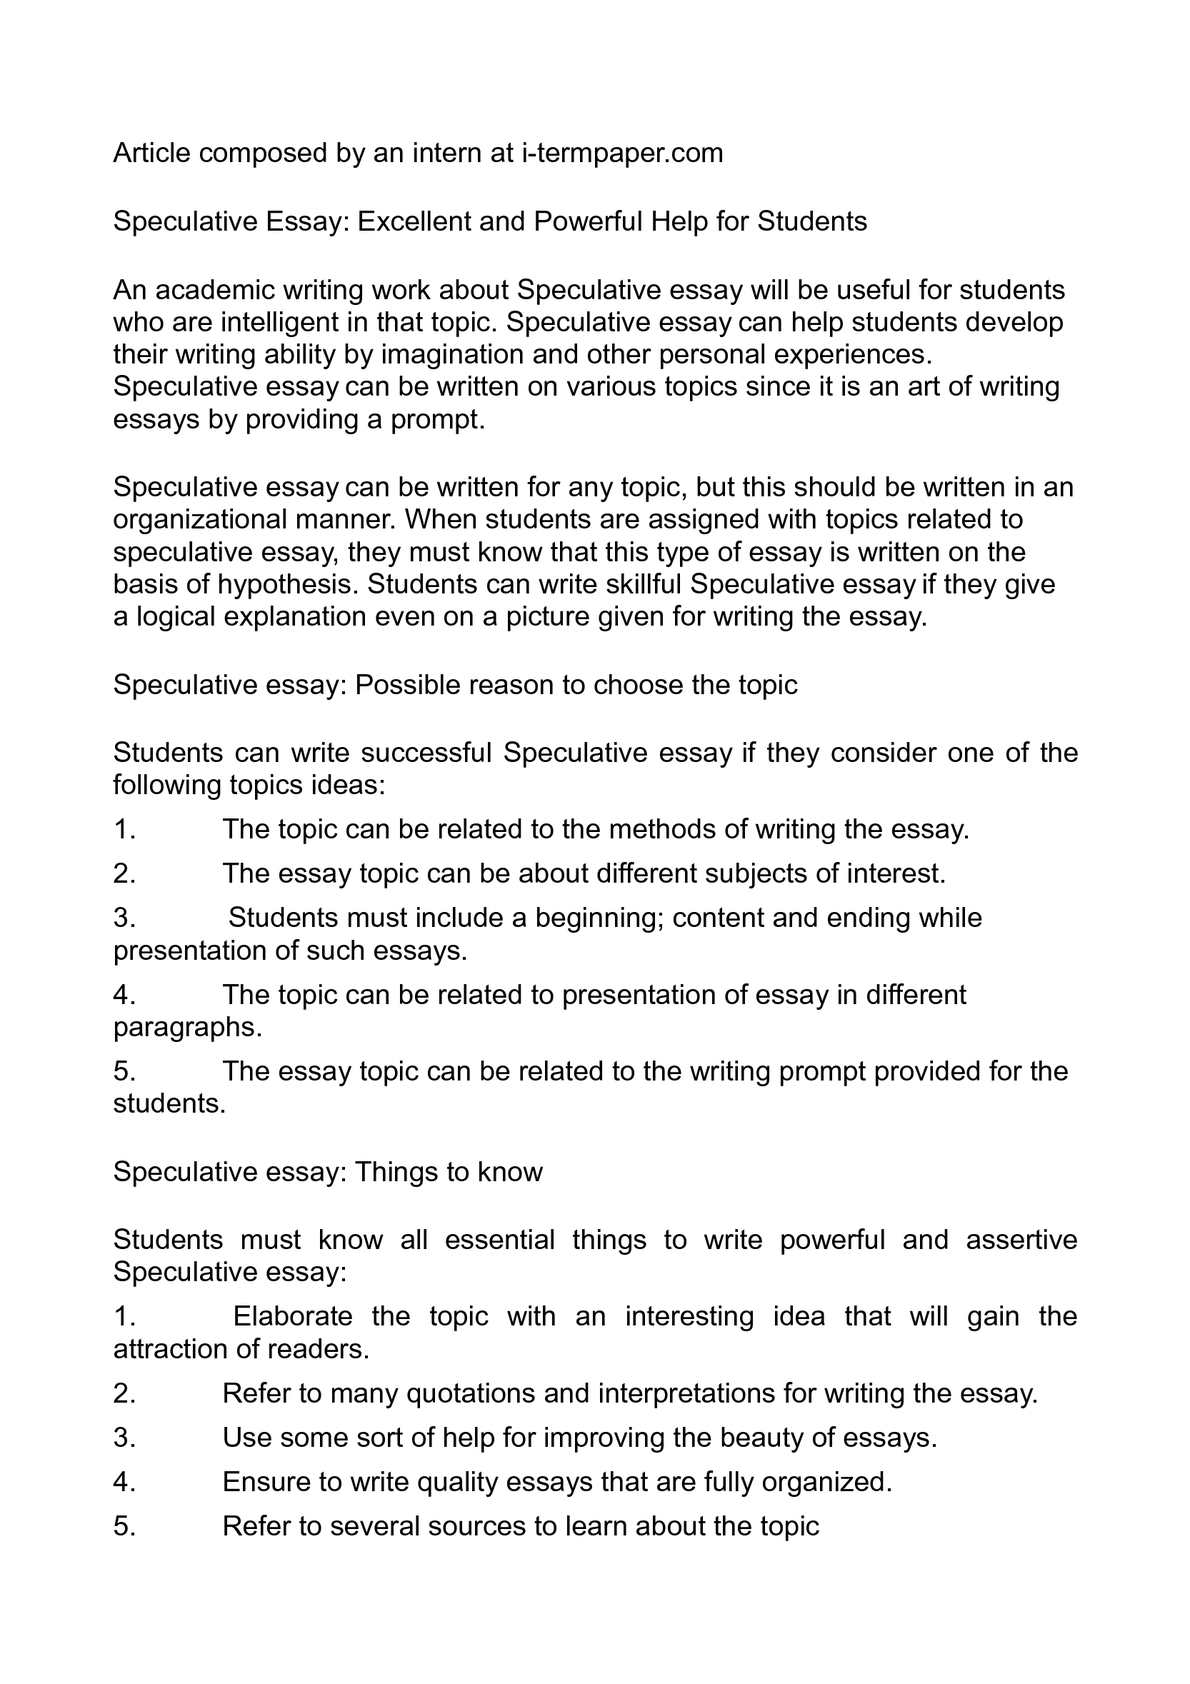 Essay Topics for a College Writing Class